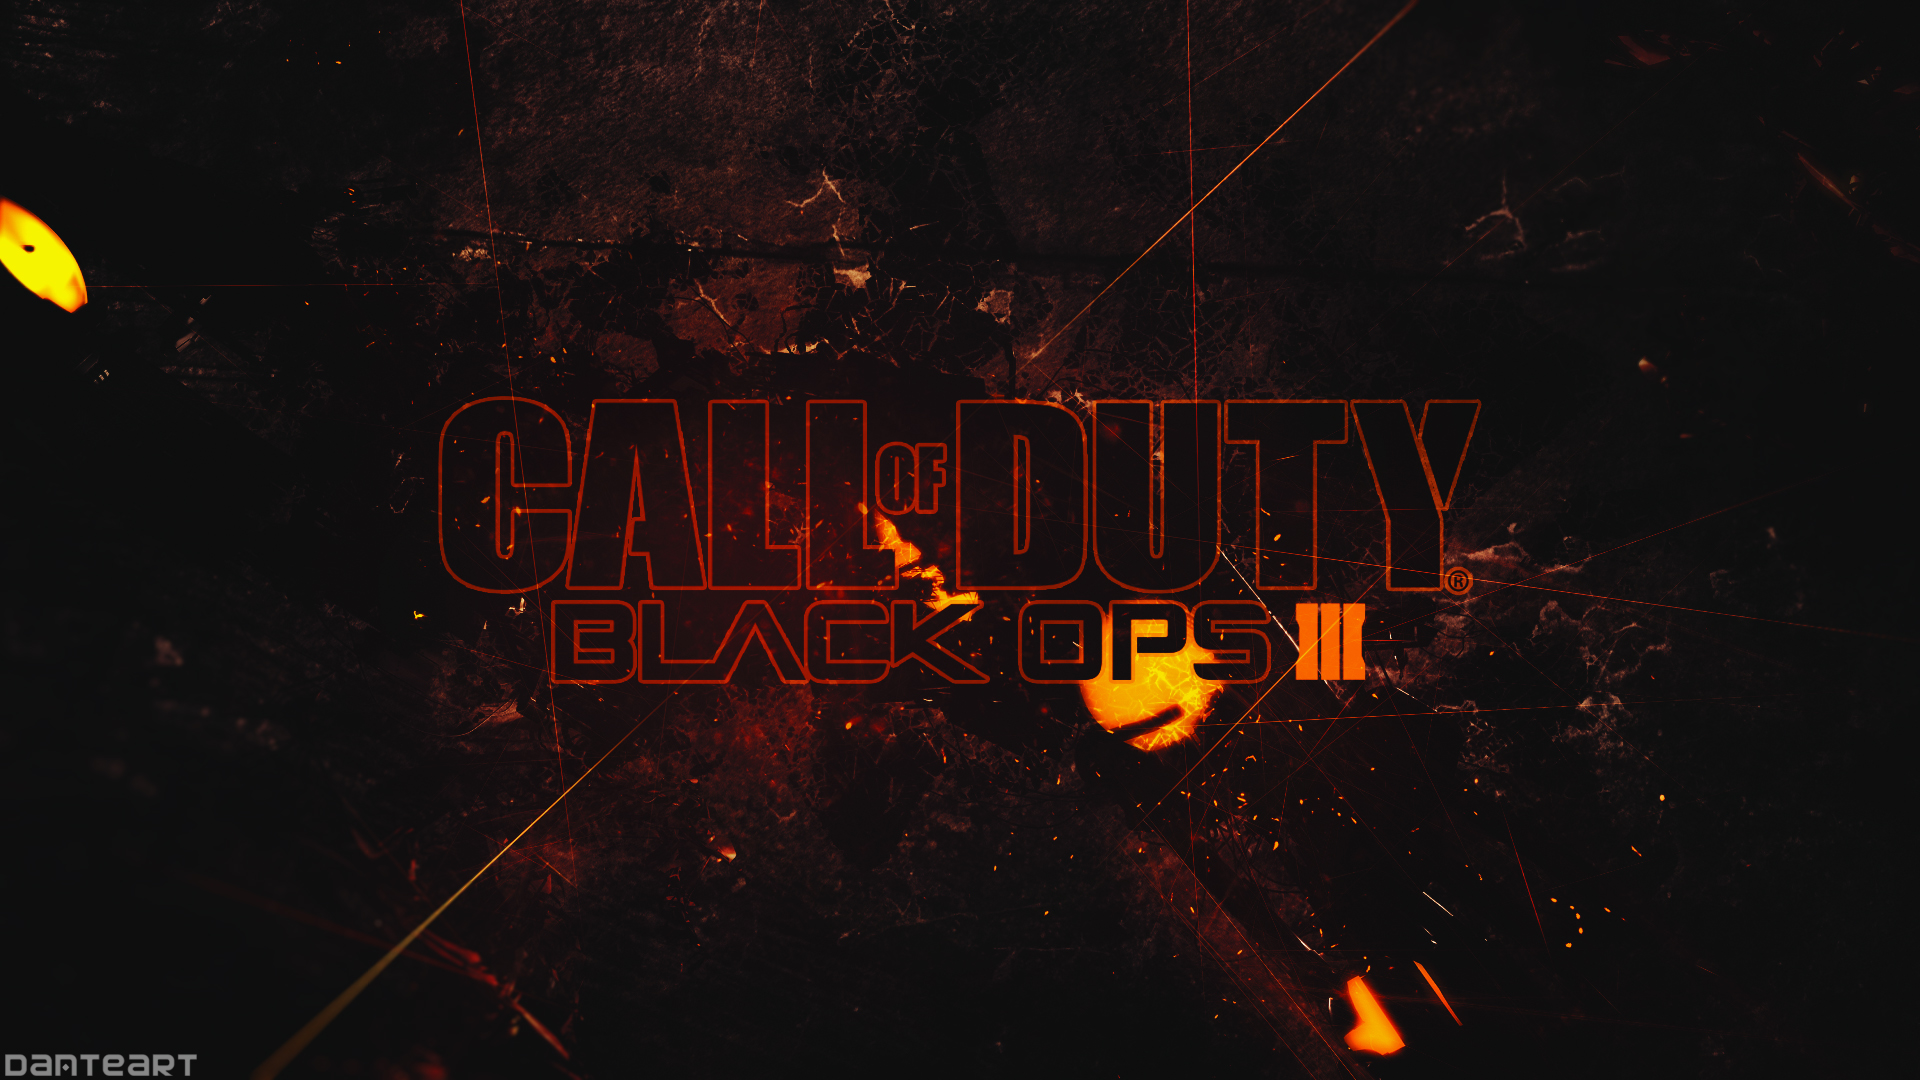 Call Of Duty Black Ops 3 Wallpaper By Danteartwallpapers On Deviantart